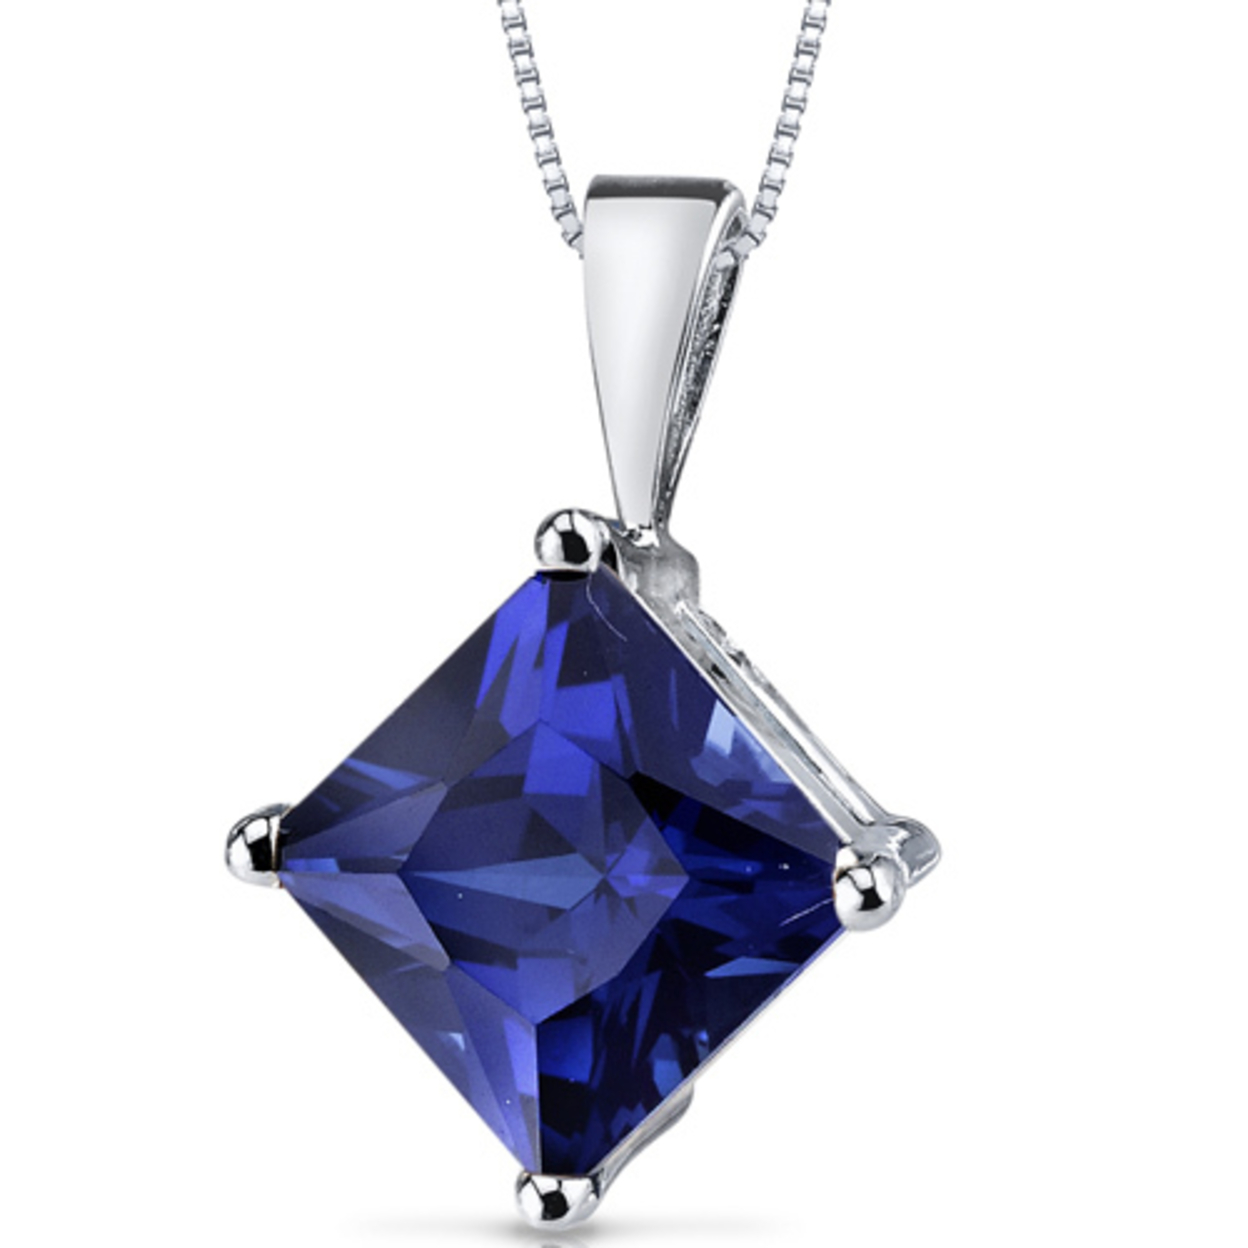 14 Karat White Gold Princess Cut 3.50 Carats Created Blue Sapphire Pendant